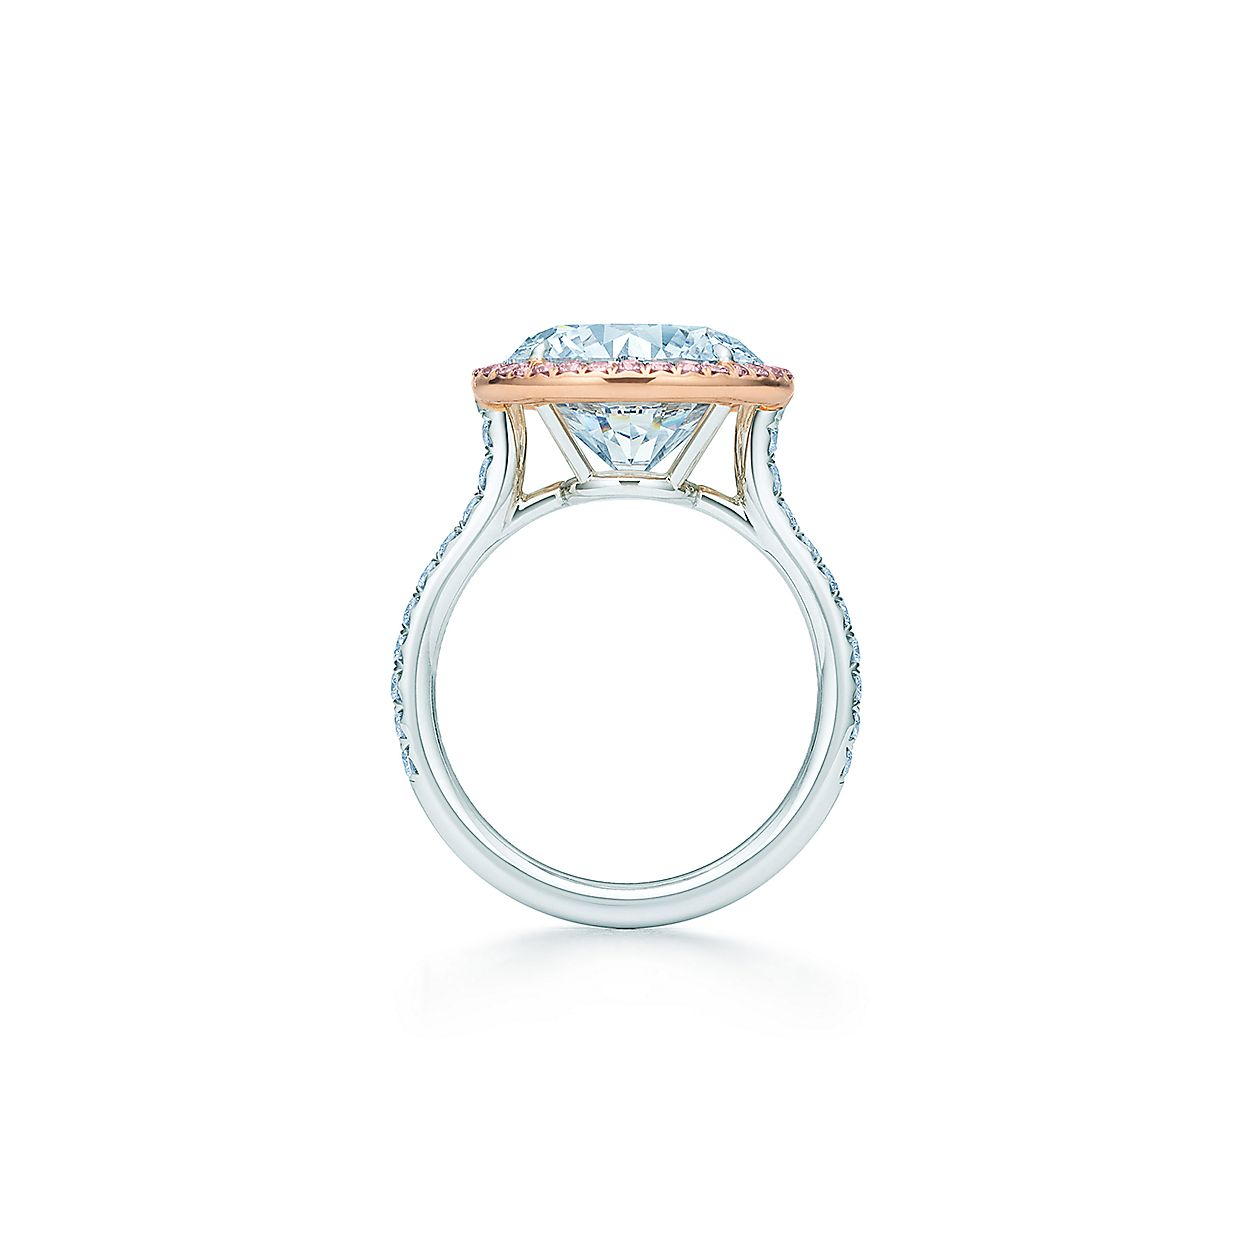 2ed9586e1 Tiffany Soleste diamond ring in platinum with white and Fancy Pink ...